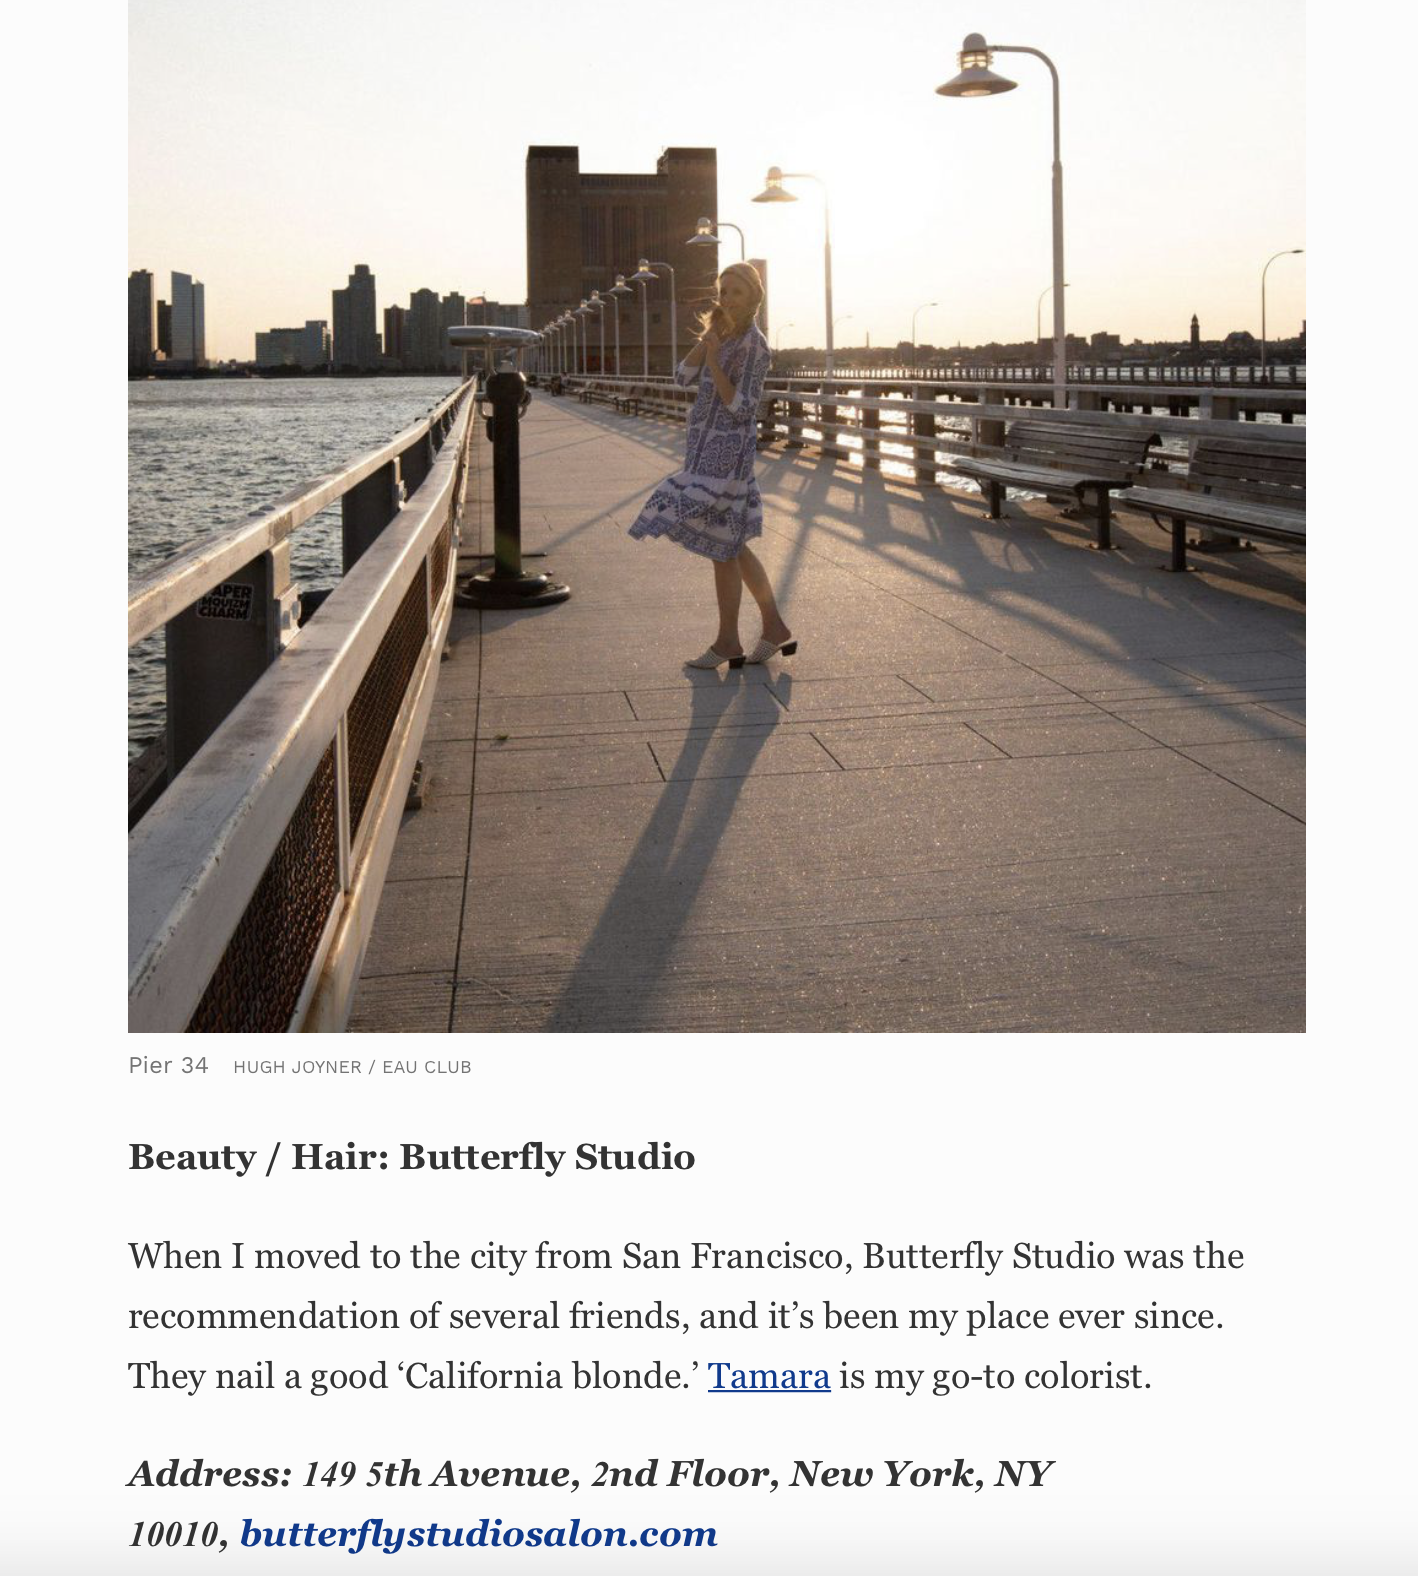 FORBES.COM   Emily Bib's Little Black Book of New York Mentions Butterfly Studio Salon as the one stop shop for everything beauty.